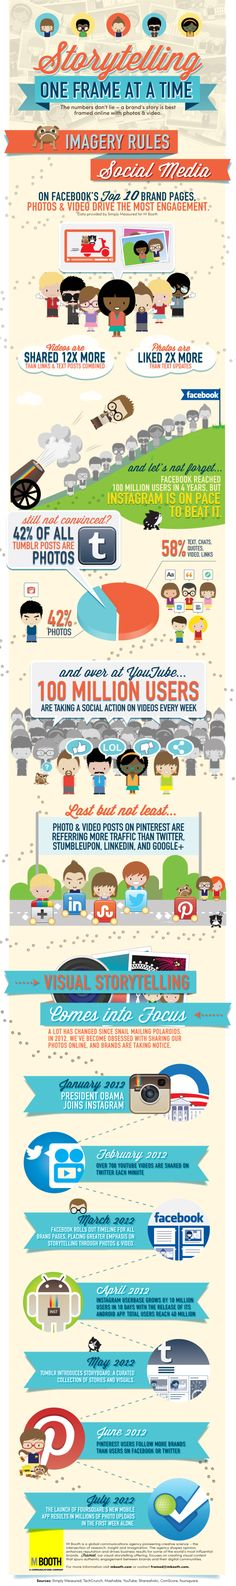 Visual Content Trumps Text in Driving Social Media Engagement [INFOGRAPHIC]